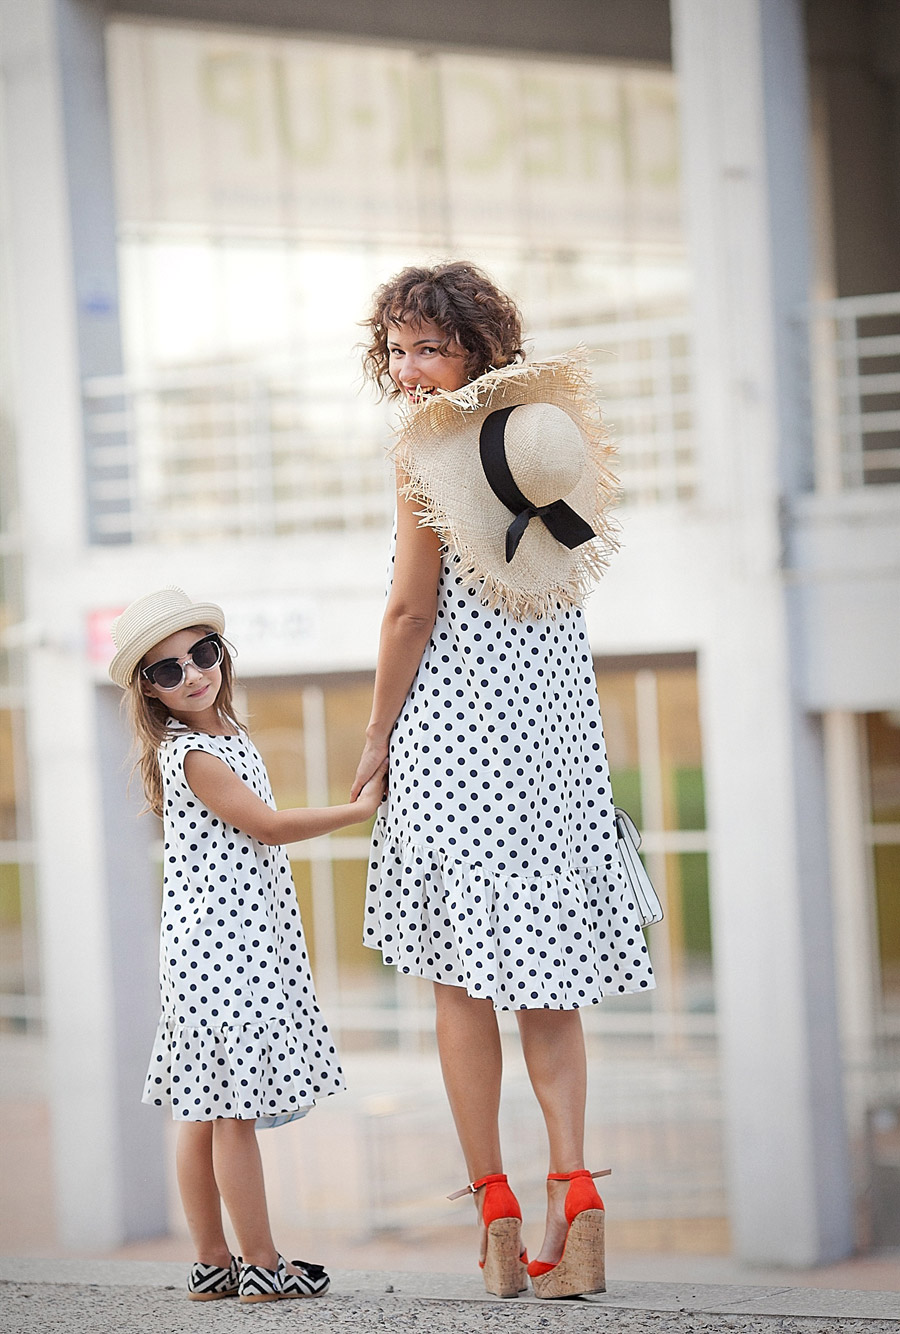 kids fashion, kids street style, kids personal style blog, polka dot dresses,